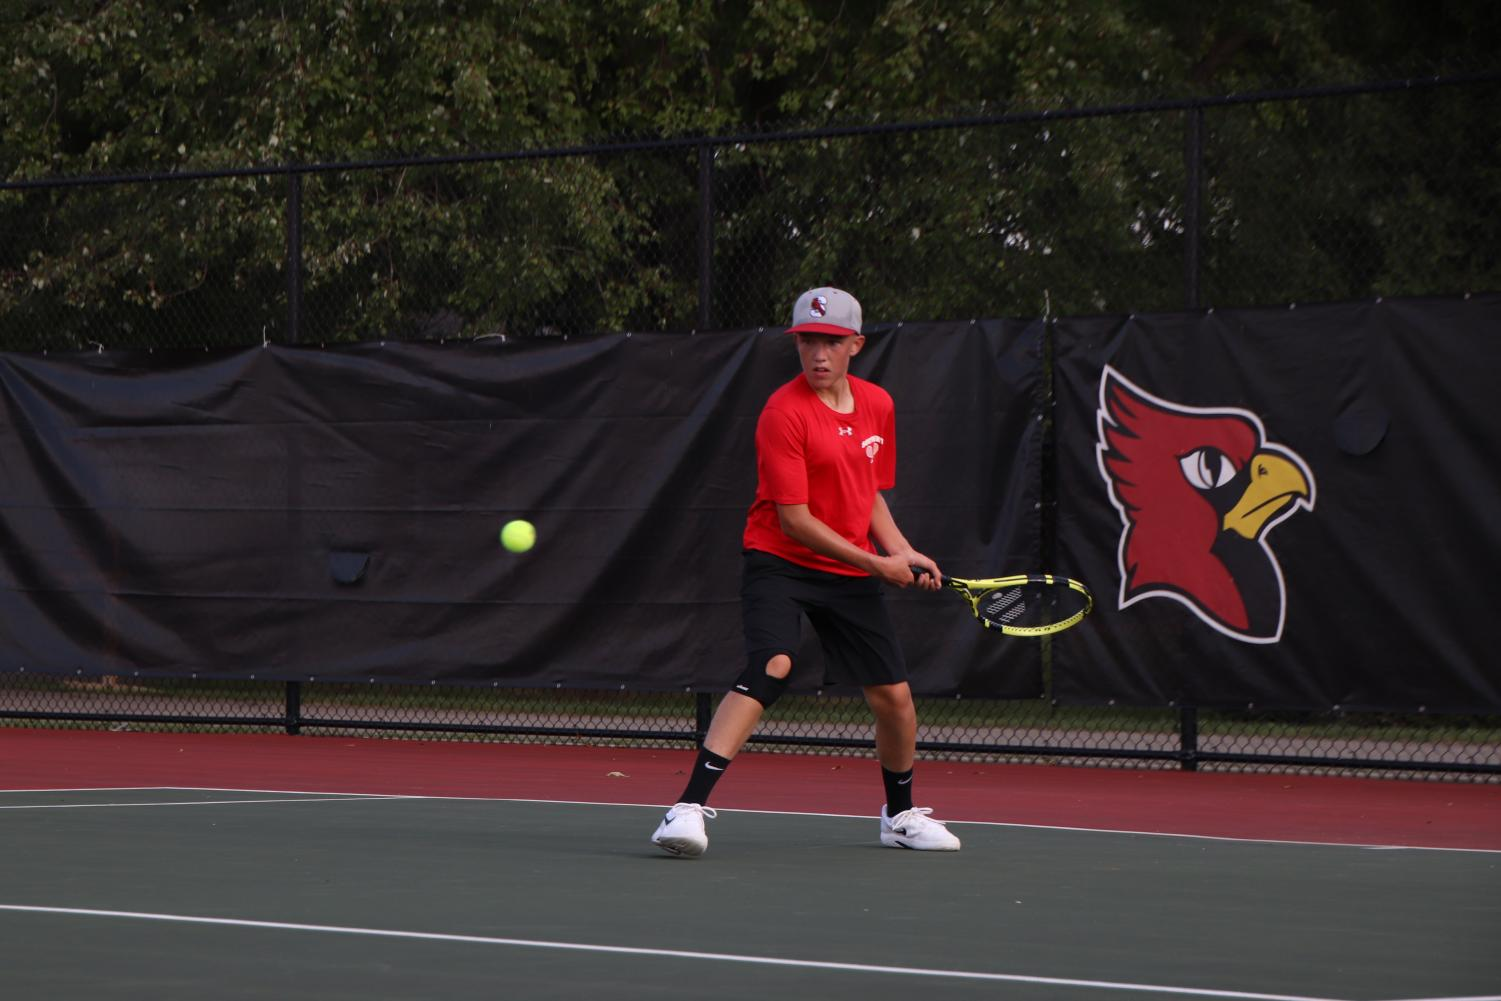 Sophomore+Micah+Fishel+watches+the+ball+come+in+to+hit+it+to+his+opponent.+Fishel+started+his+first+set+0-3+Decatur+and+came+back+to+win+the+sets+6-4+and+6-4.+